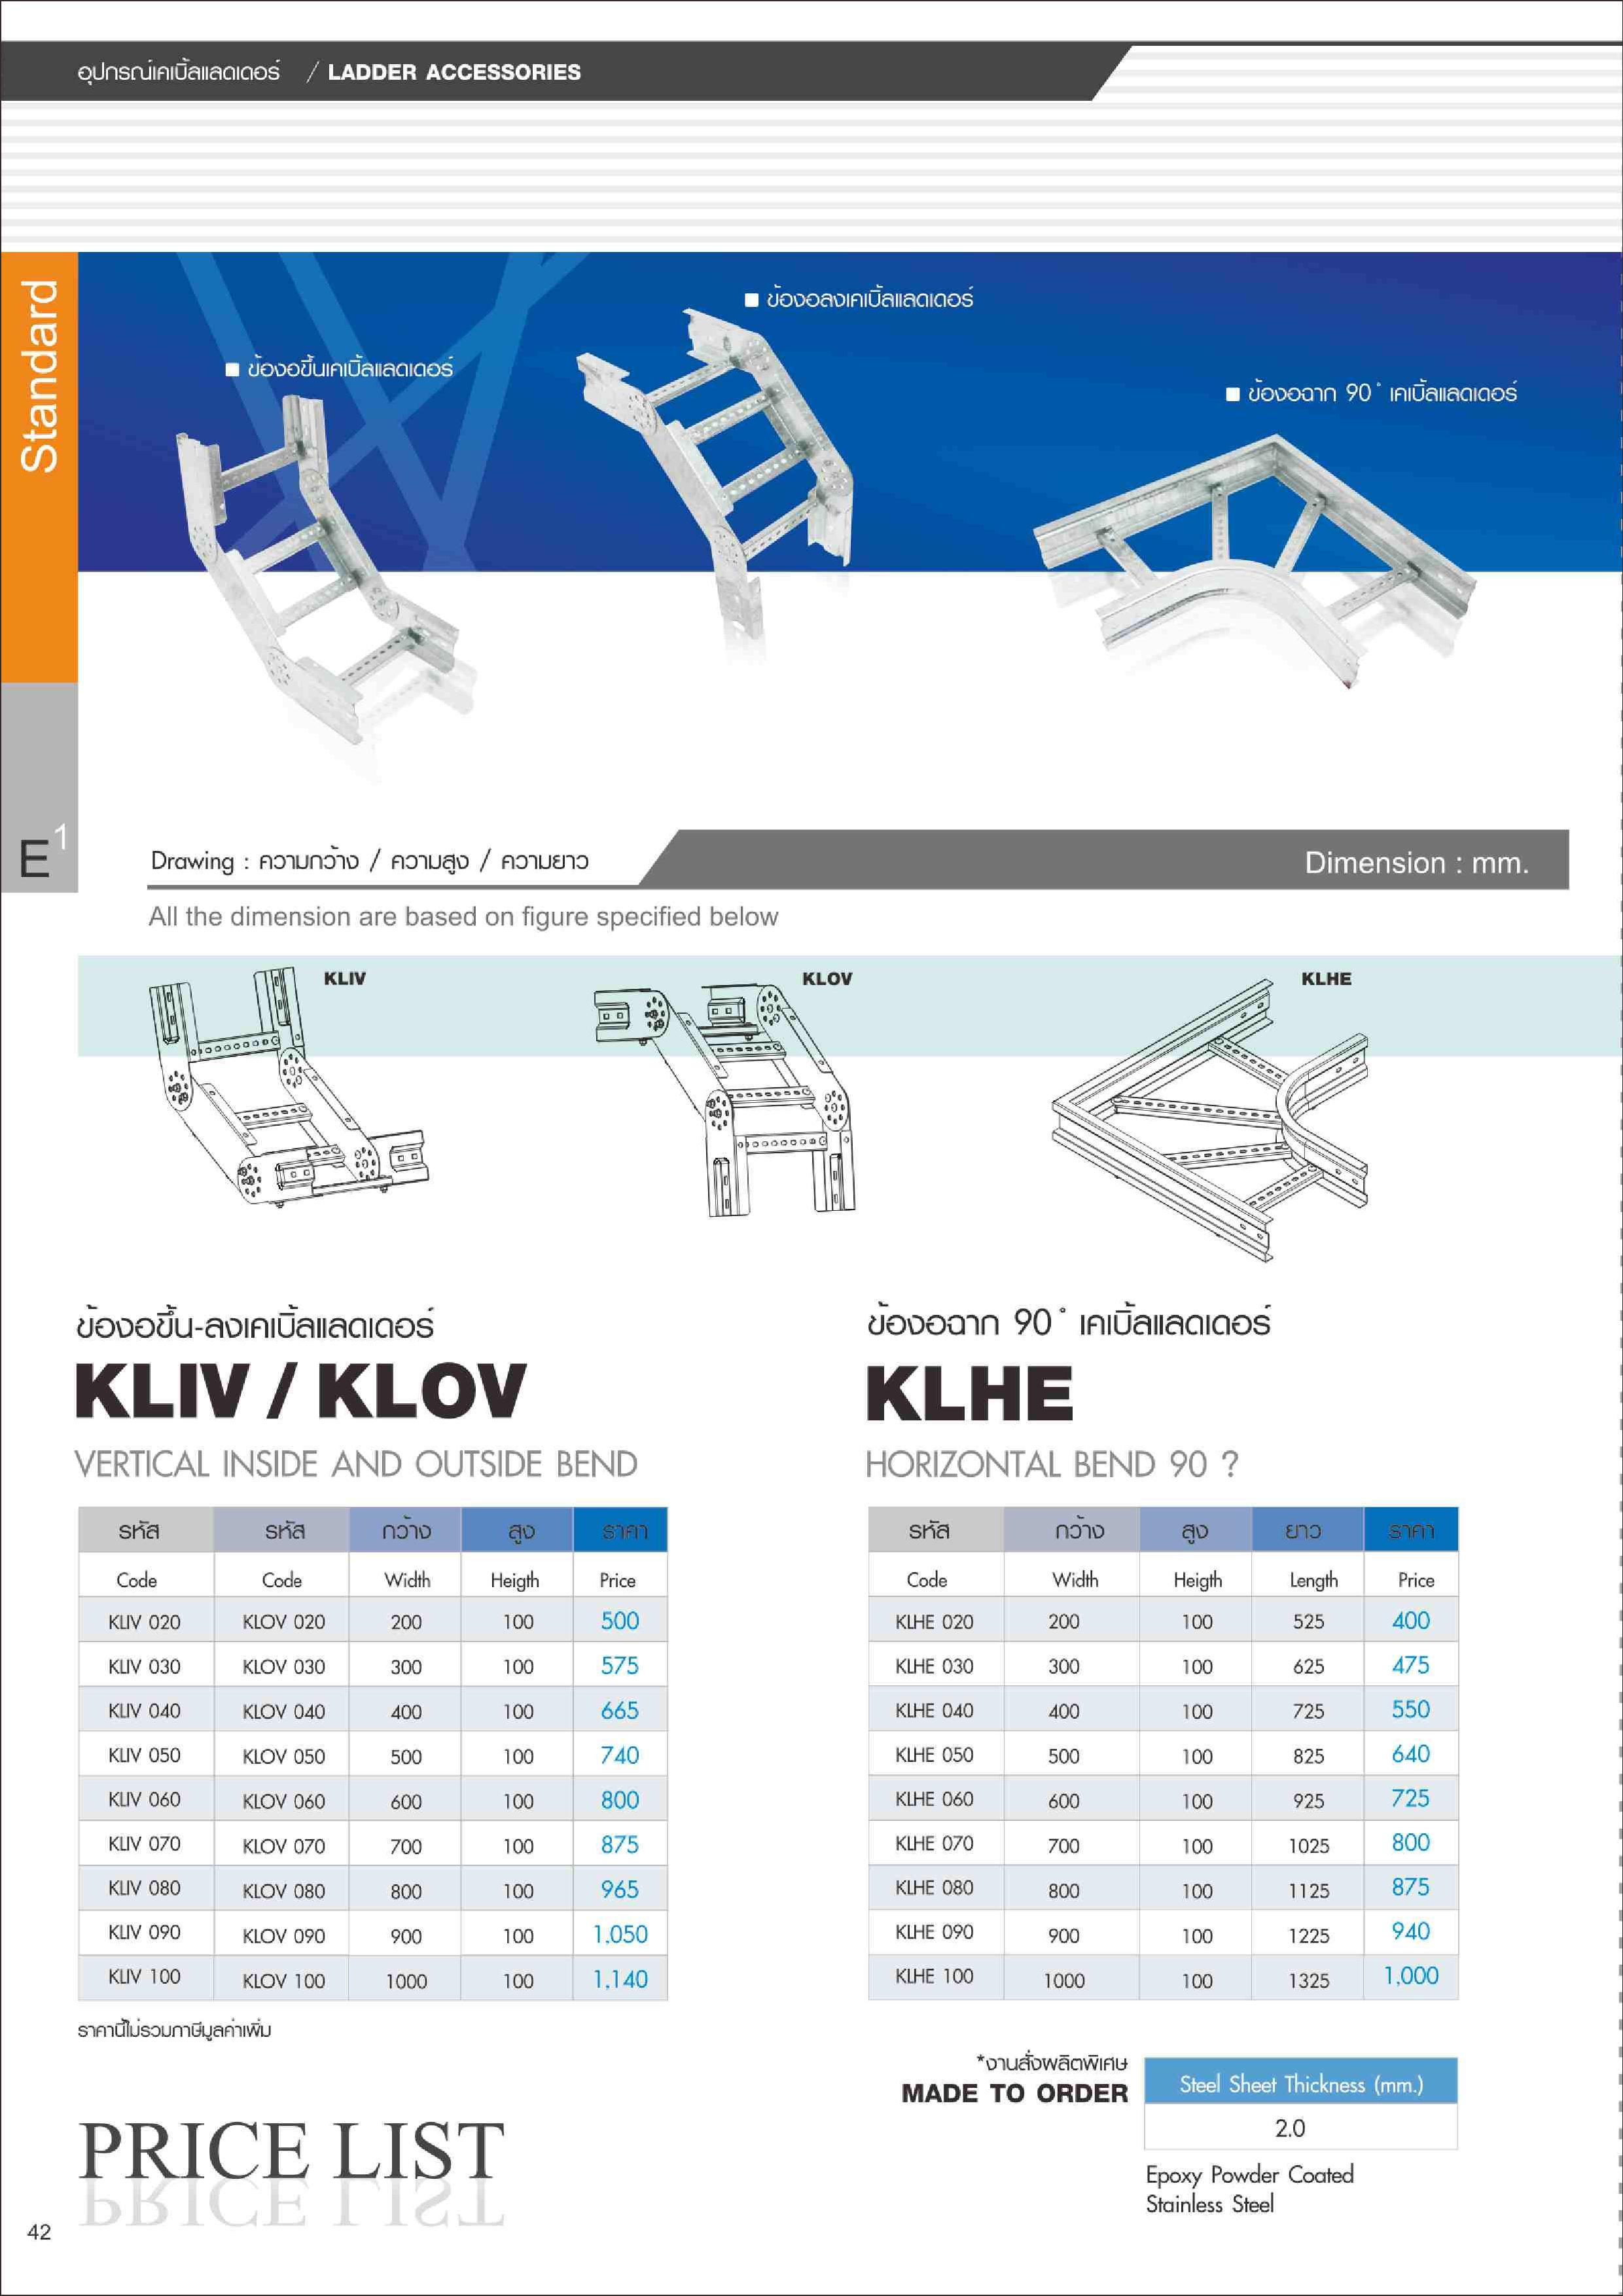 Kjl Cable Ladder And Accessories บจก เอ็นไซ กรุ๊ป